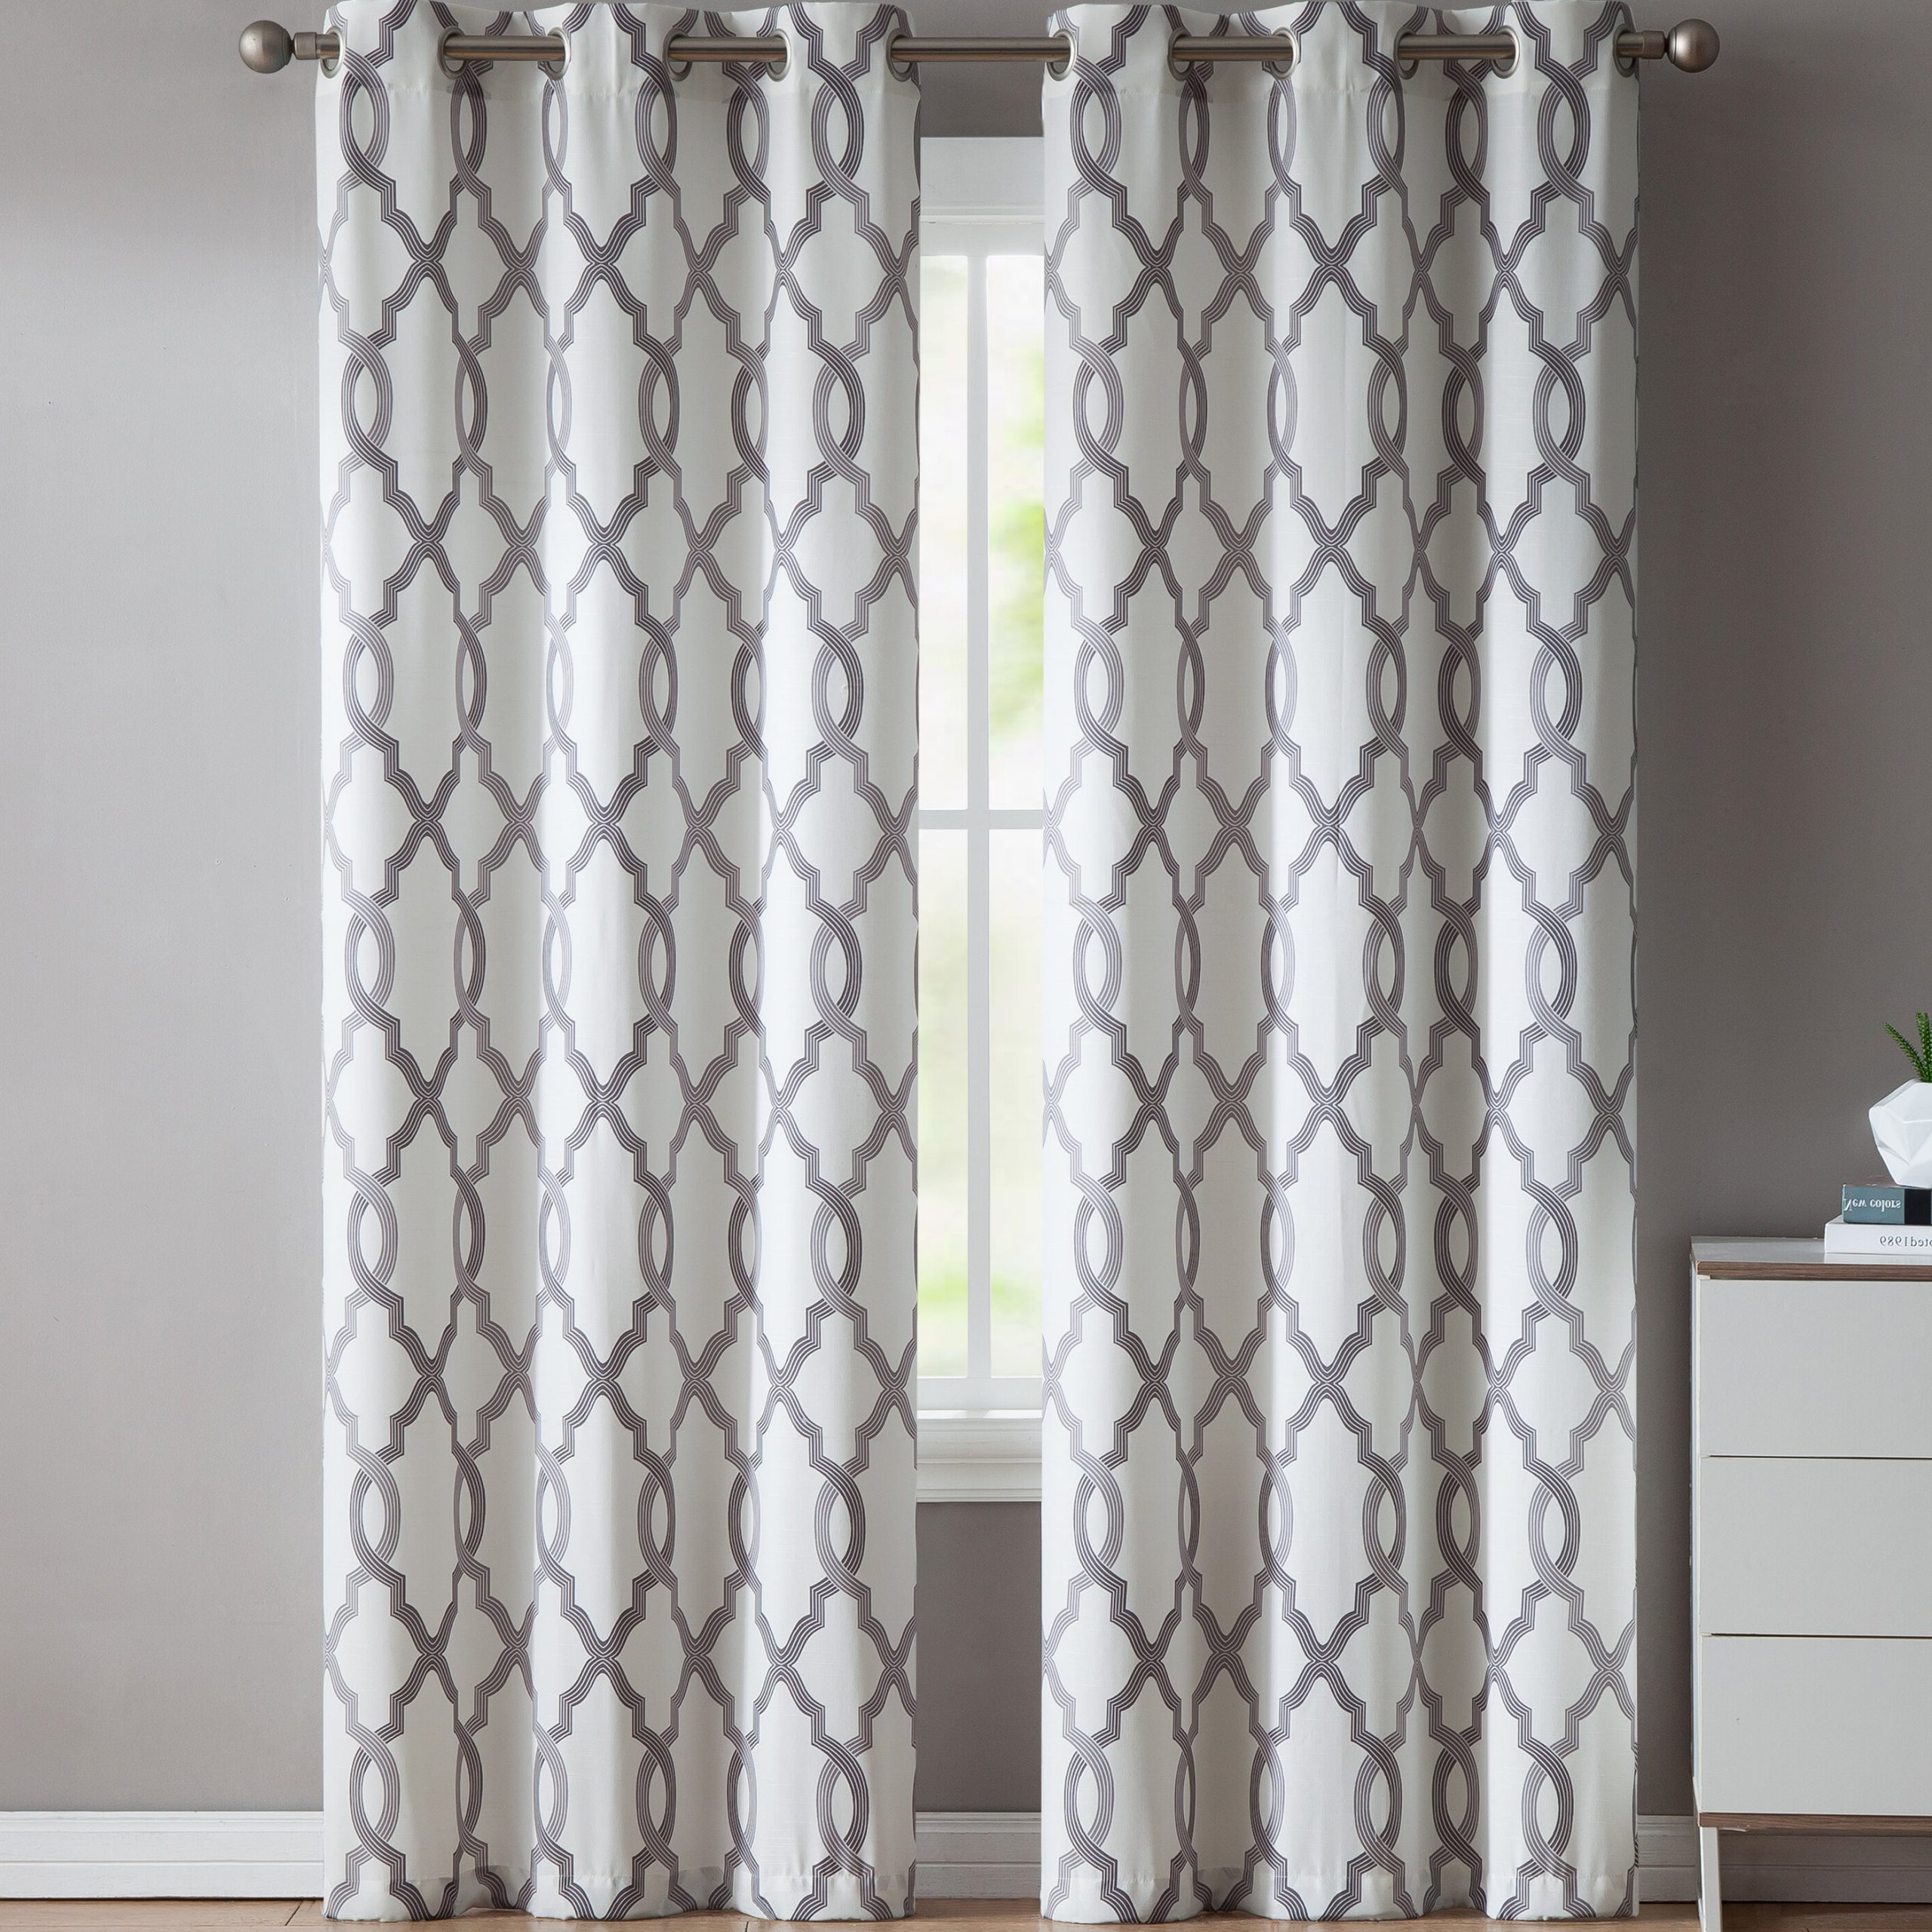 Torr Geometric Semi Sheer Grommet Curtain Panels Within Fashionable Fretwork Print Pattern Single Curtain Panels (View 16 of 20)